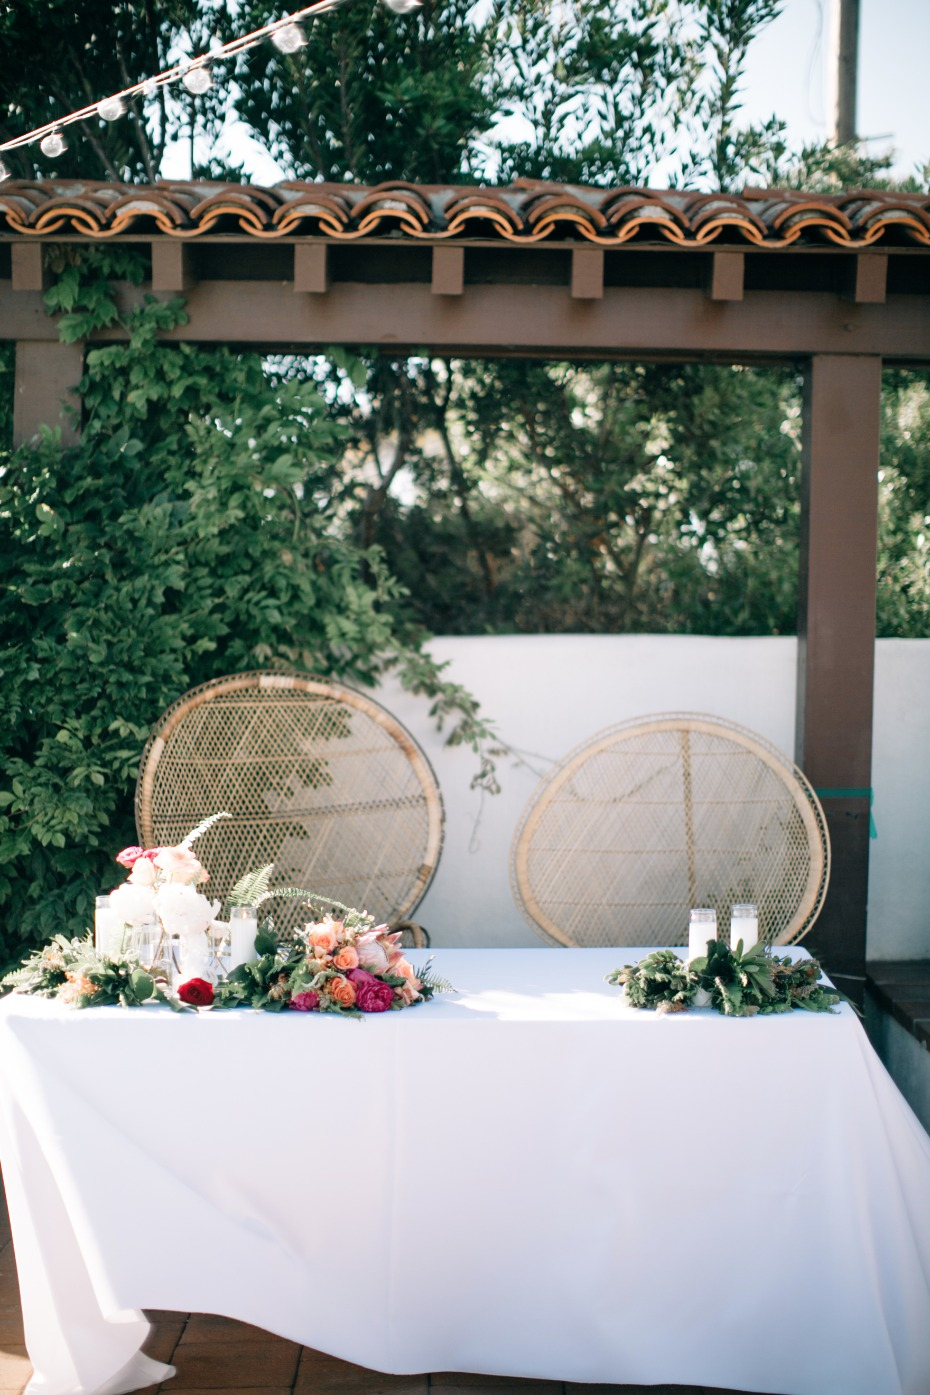 Peacock wedding chairs at sweetheart table